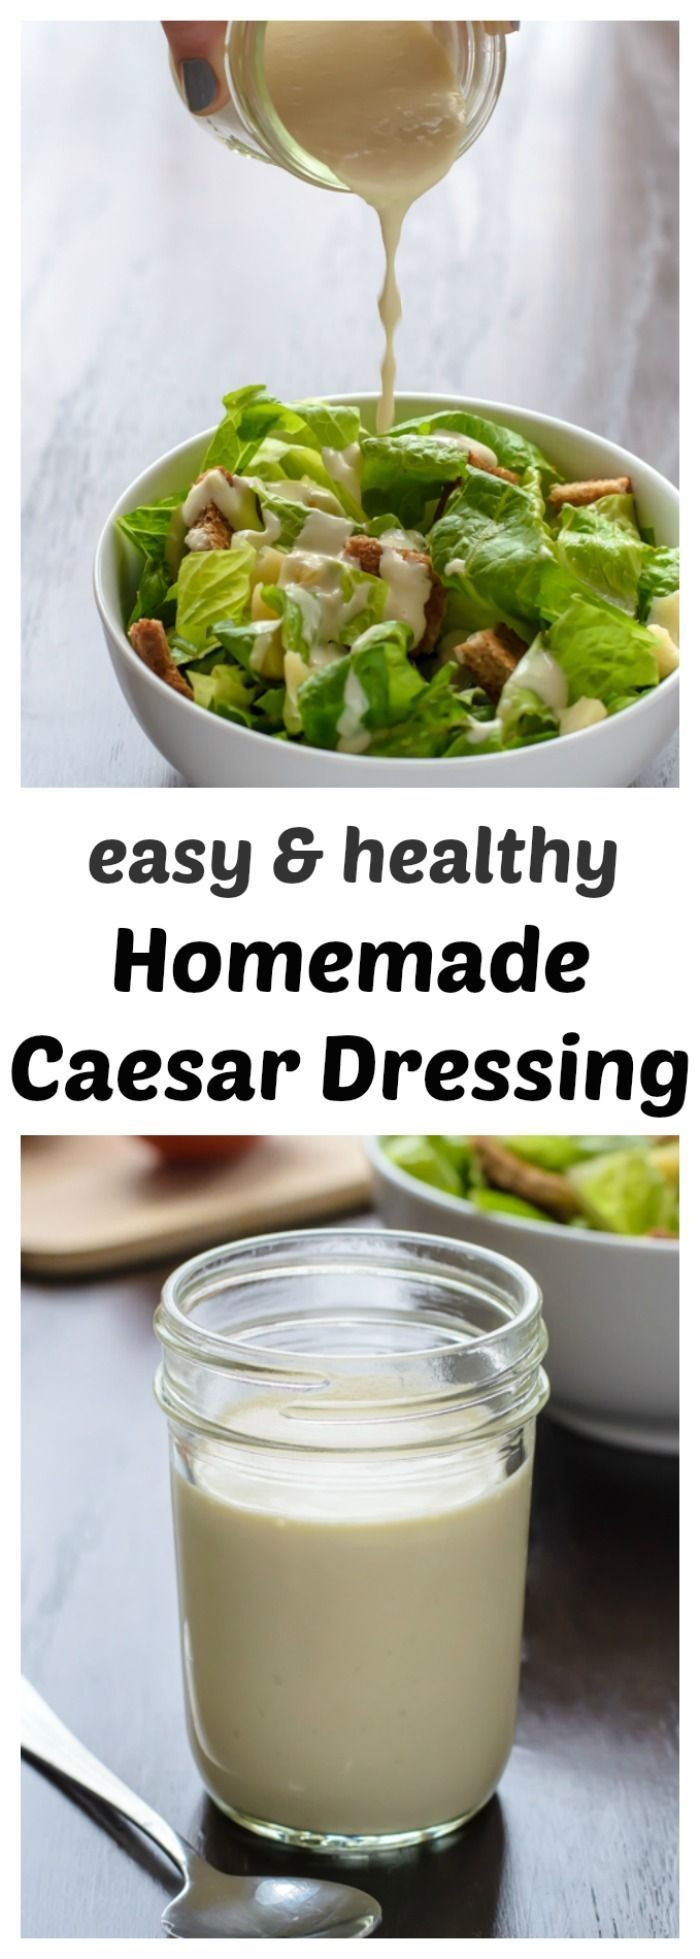 Homemade Caesar Dressing. An easy and healthy recipe made with Greek yogurt. All the flavor of classic Caesar dressing, none of the guilt!